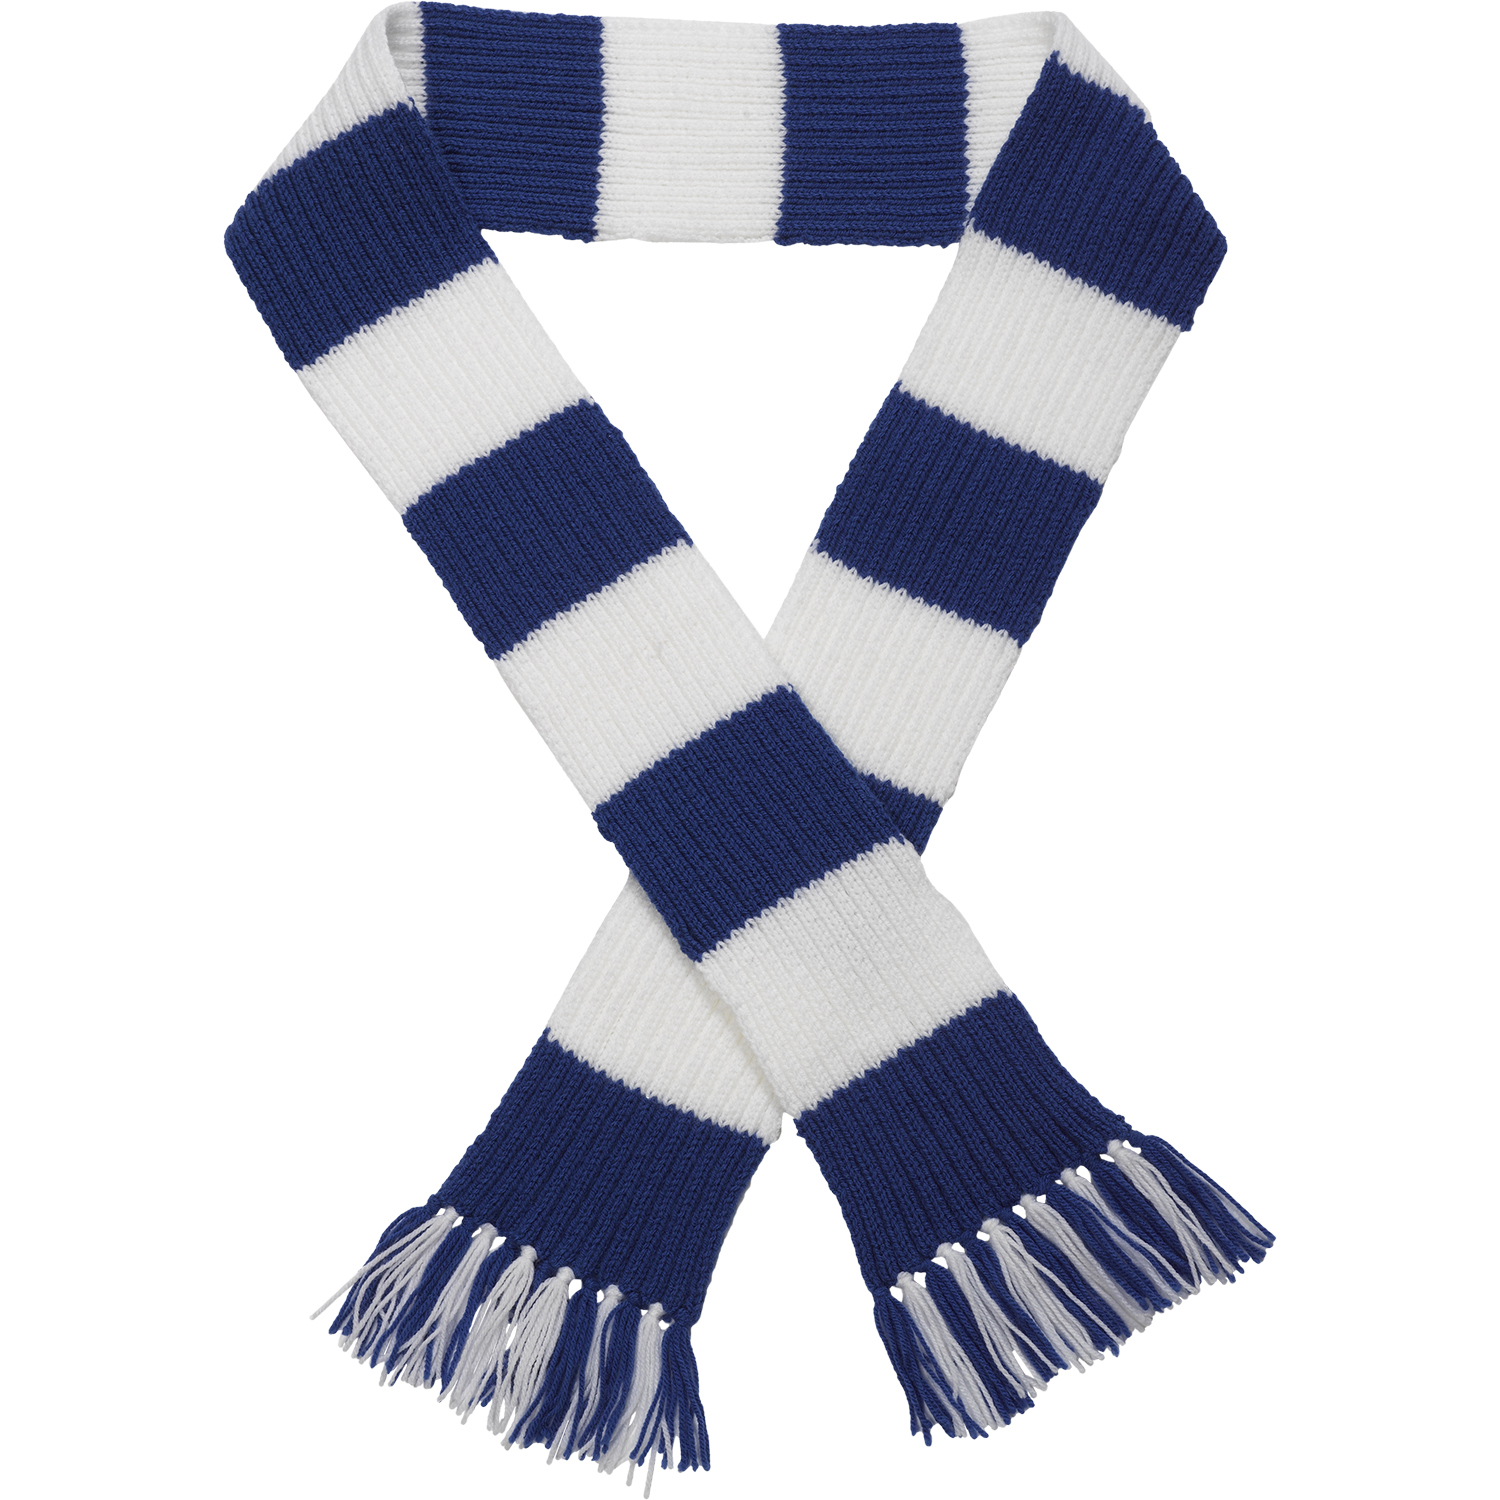 Knitting Pattern With Wool : Premier League Team Striped Football Scarf Knitting Pattern Wool Craft Hobby ...